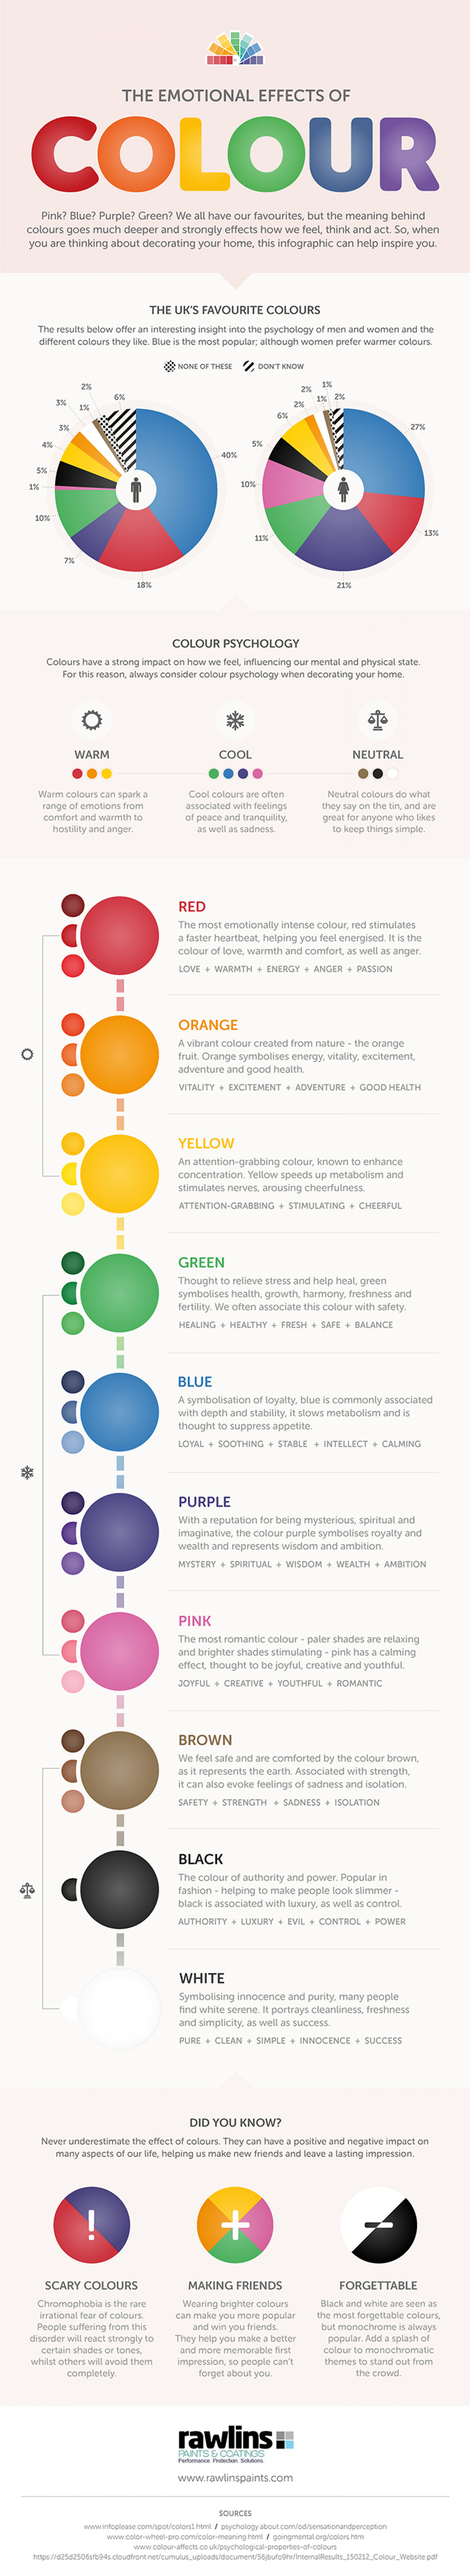 The Emotional Effects of Colour Infographic